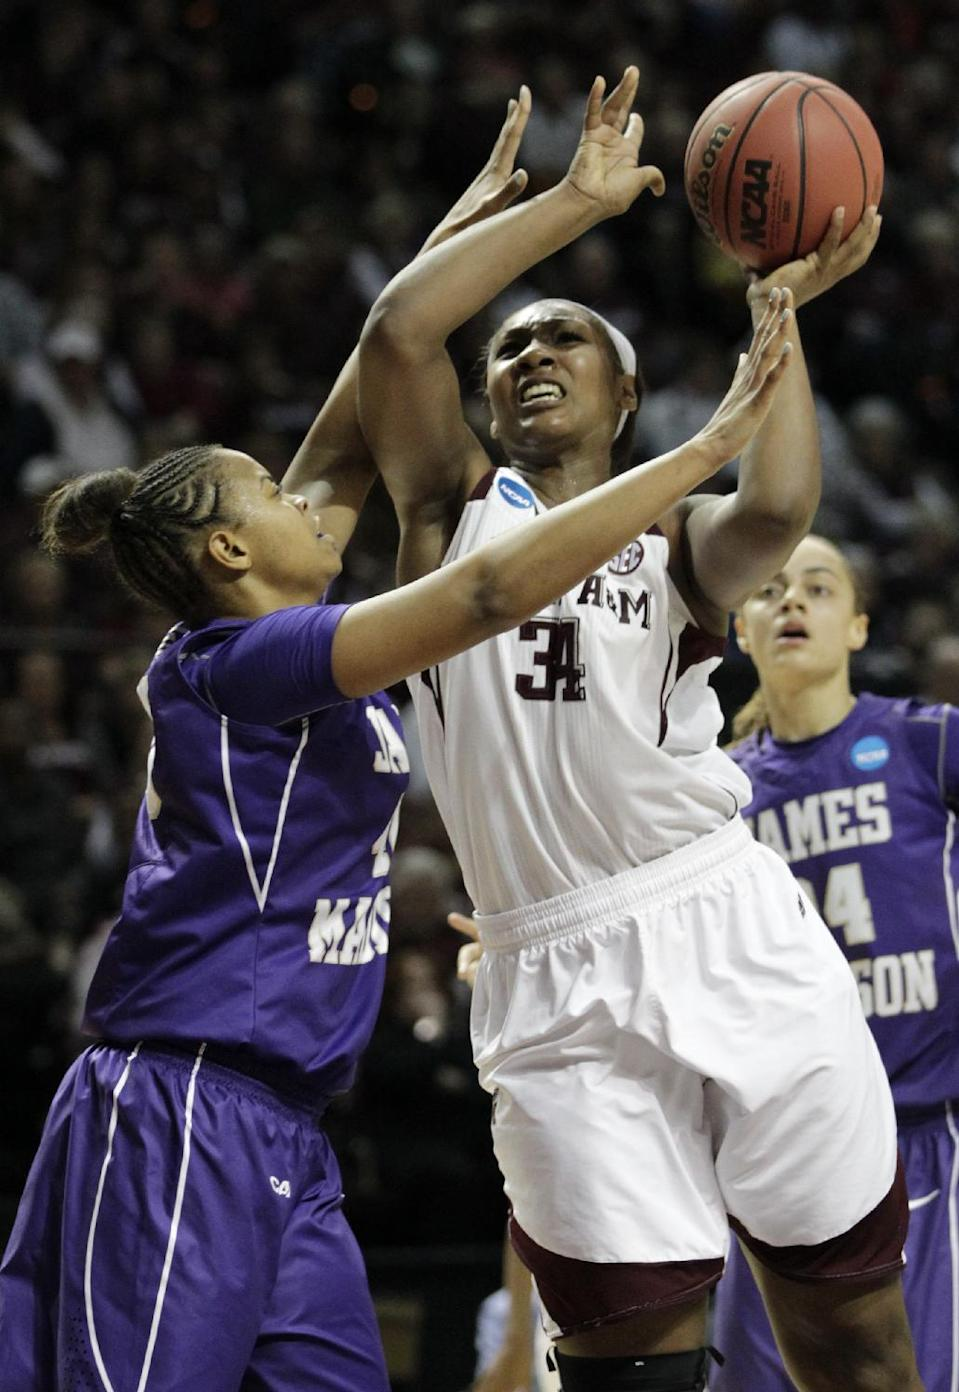 3Texas A&M center Karla Gilbert (34) takes a shot over James Madison forward Da'Lishia Griffin during the first half of an NCAA women's basketball game, Tuesday, March 25, 2014, in College Station, Texas. (AP Photo/Patric Schneider)